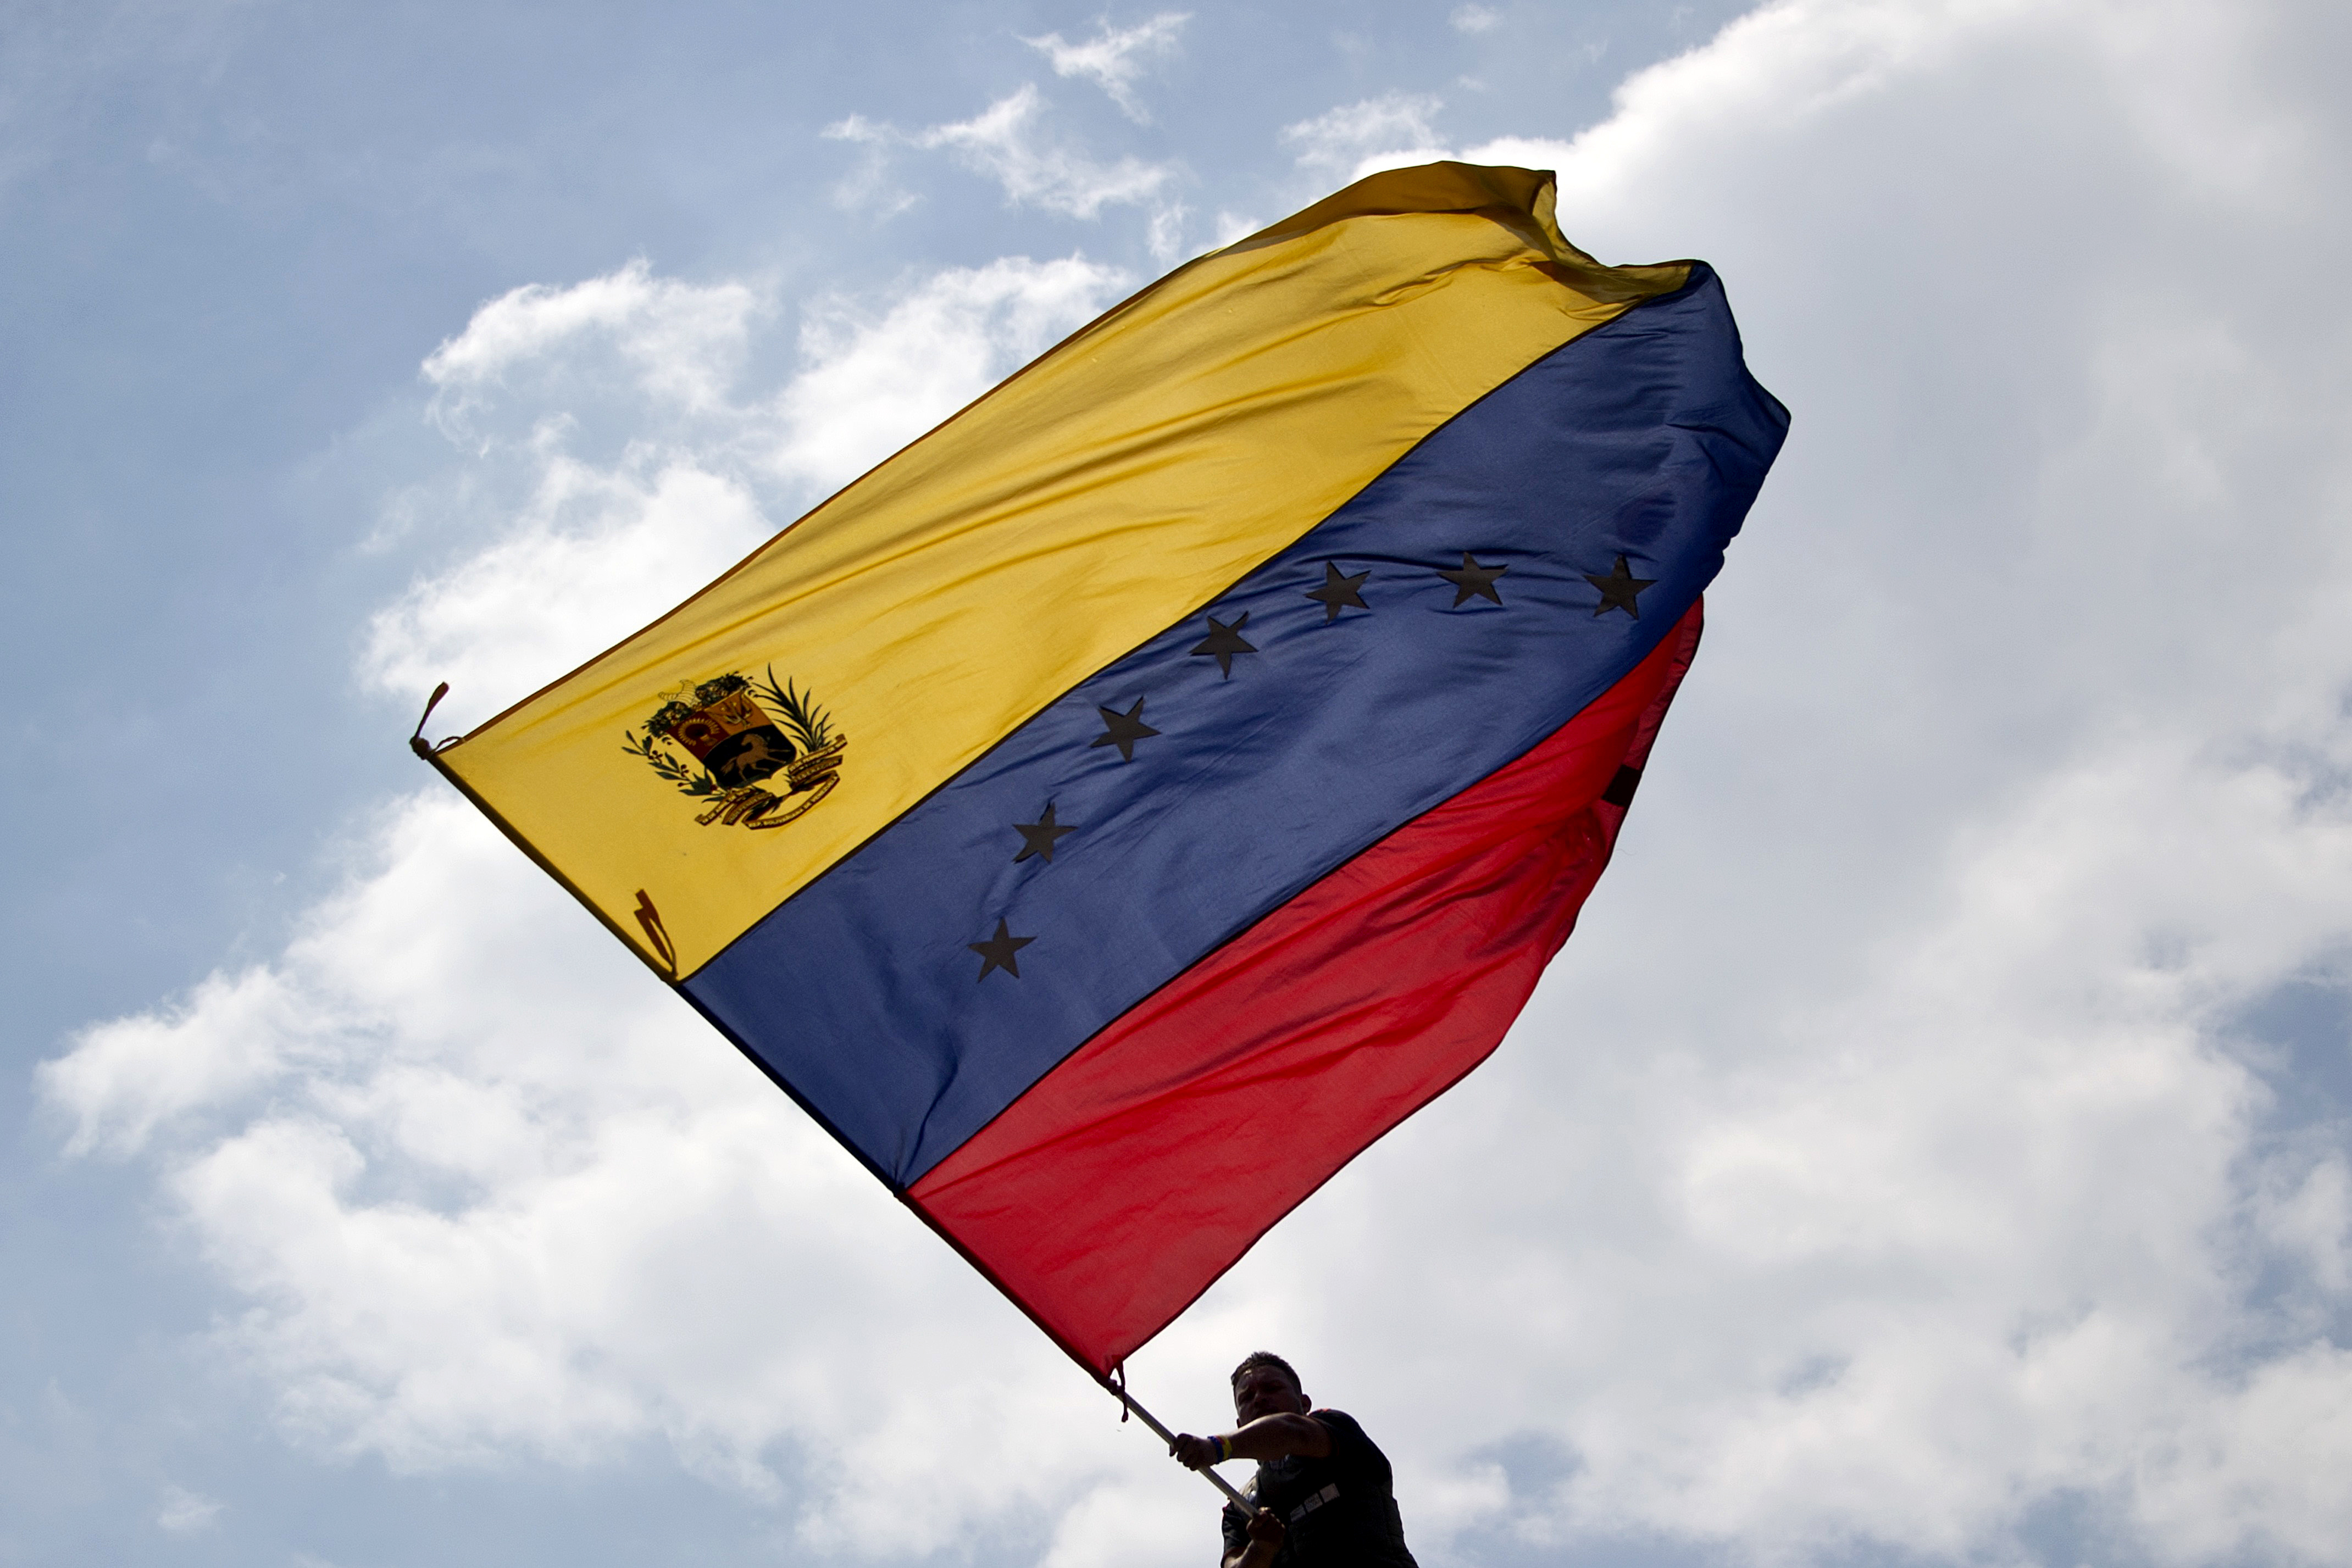 A man waves a Venezuelan flag during a protest against the government of President Nicolas Maduro in San Cristobal, Venezuela, on Feb. 22, 2014.